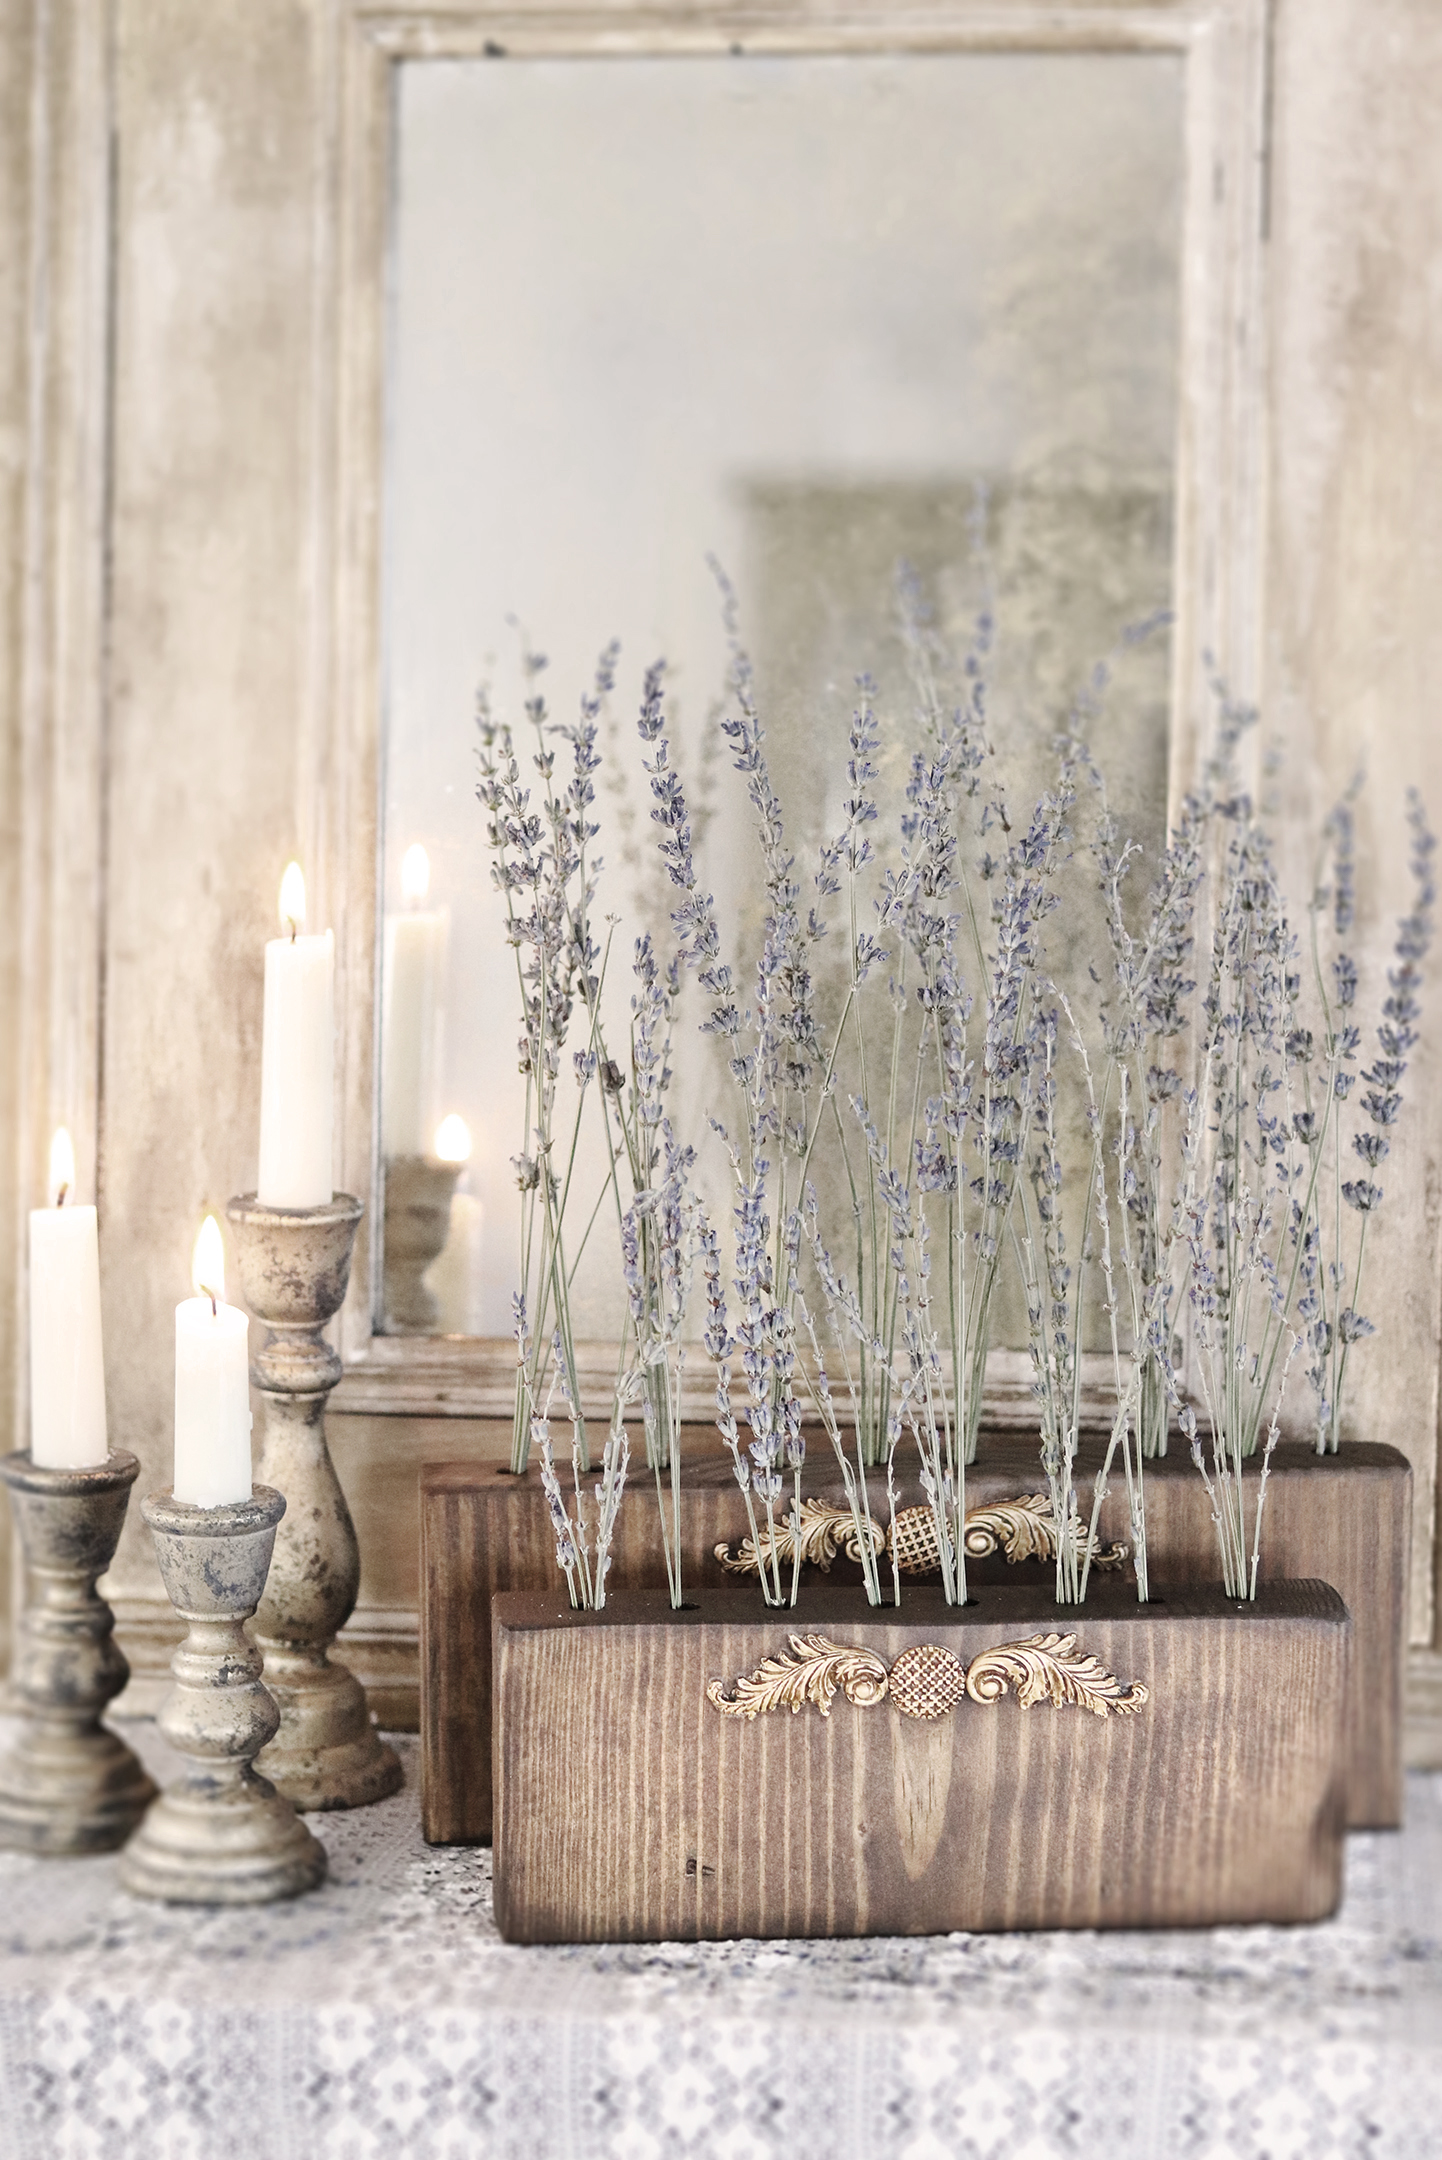 Boroughfare Home Vintage Lavender Set with French Design and Antique Mirror